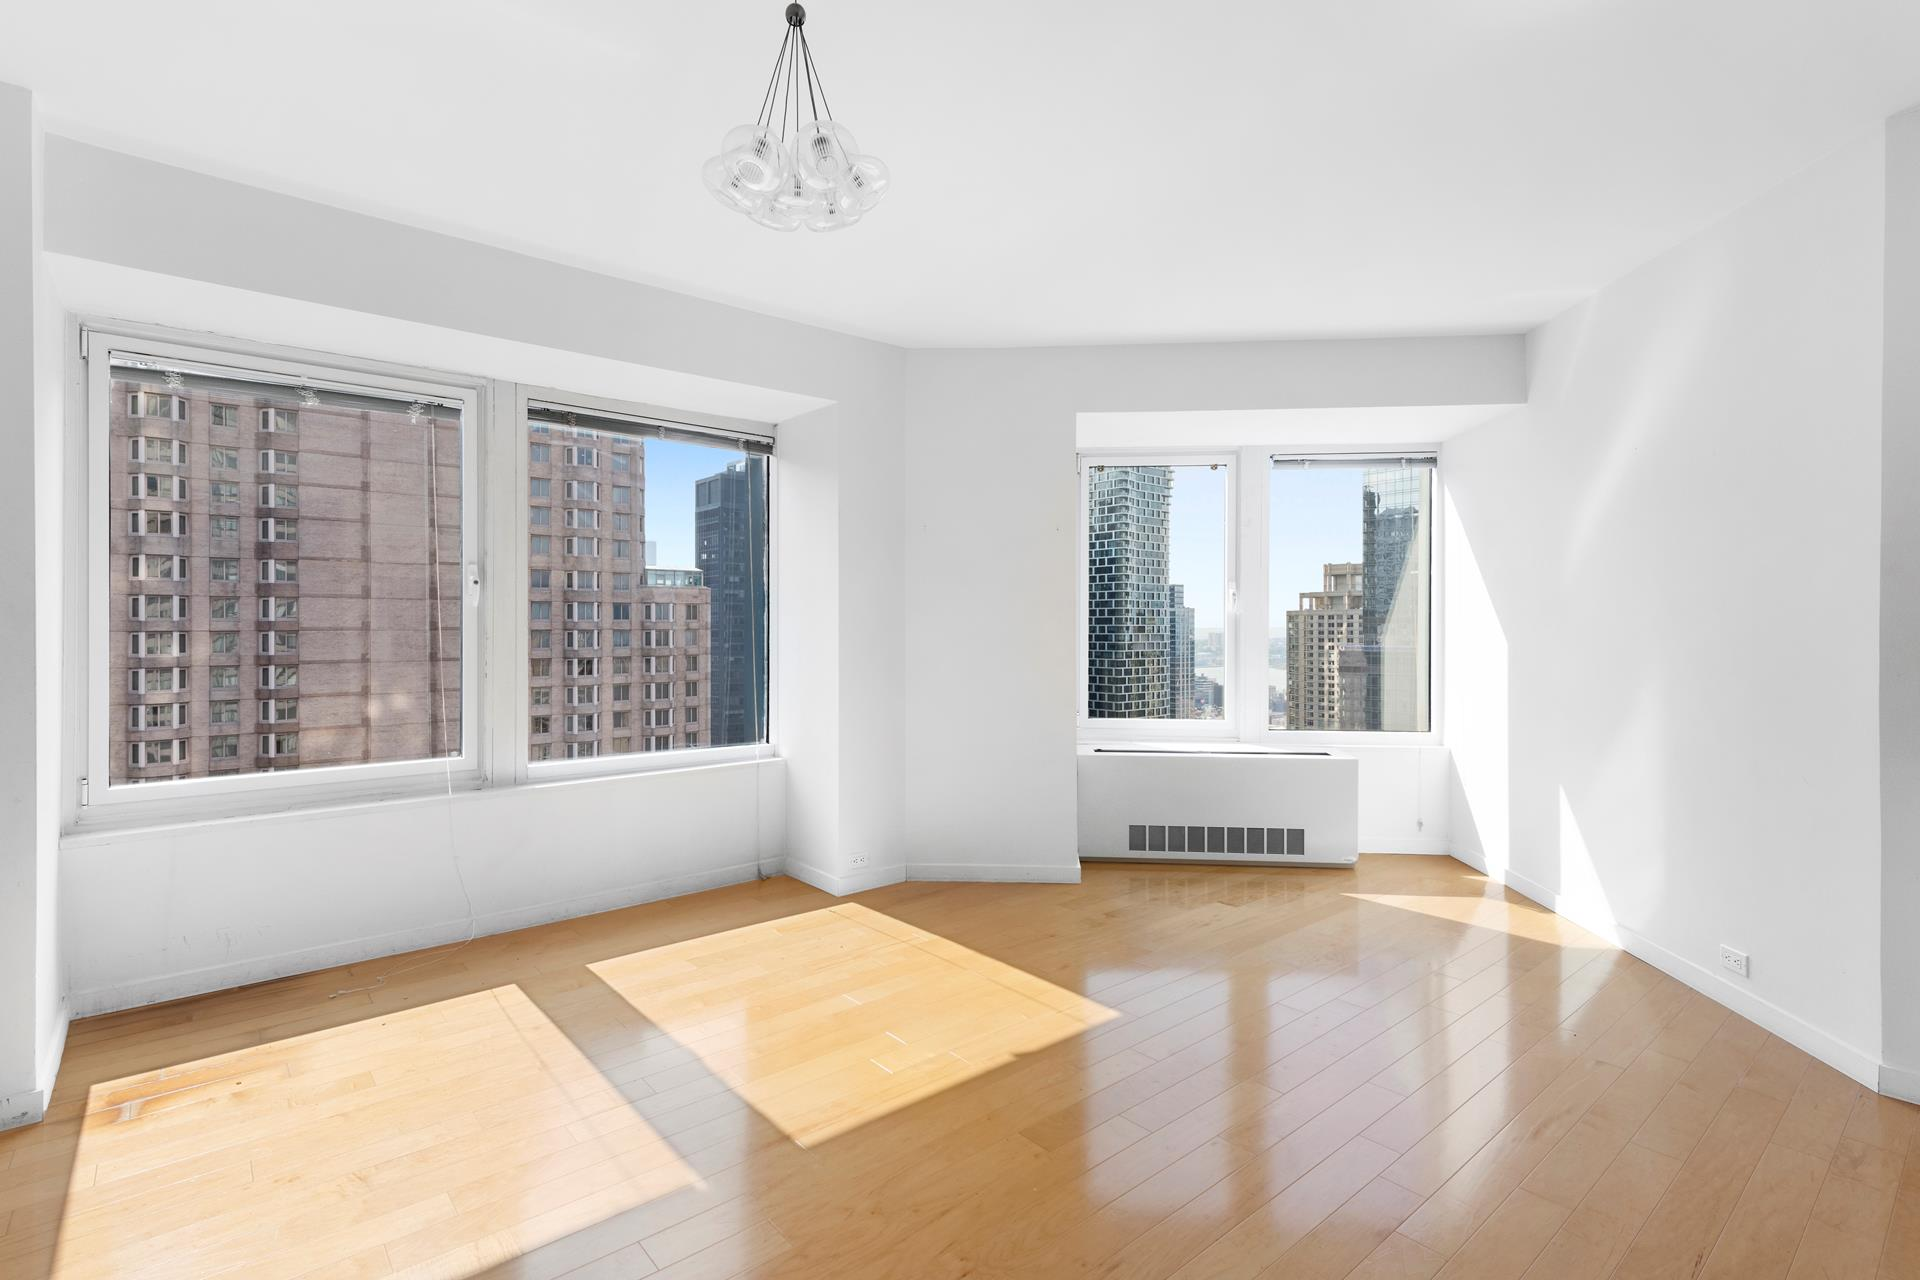 No brokers FeeSEMI FURNISHED or Unfurnished 1 Bed/1.5 Bath recently GUT renovated.Furnished or unfurnished 1-Bedroom, 1.5 Bath home with breathtaking views of NYC skyline in a full-service building.New Kitchen with top-of-the-line appliances and new floors installed recently.Live in luxuryThe full service building offers a swimming pool, gym, yoga room, conference room, sauna/steam room, a party room, and a children's playroom!There is also a garage in the building.Contact us for a private showing today